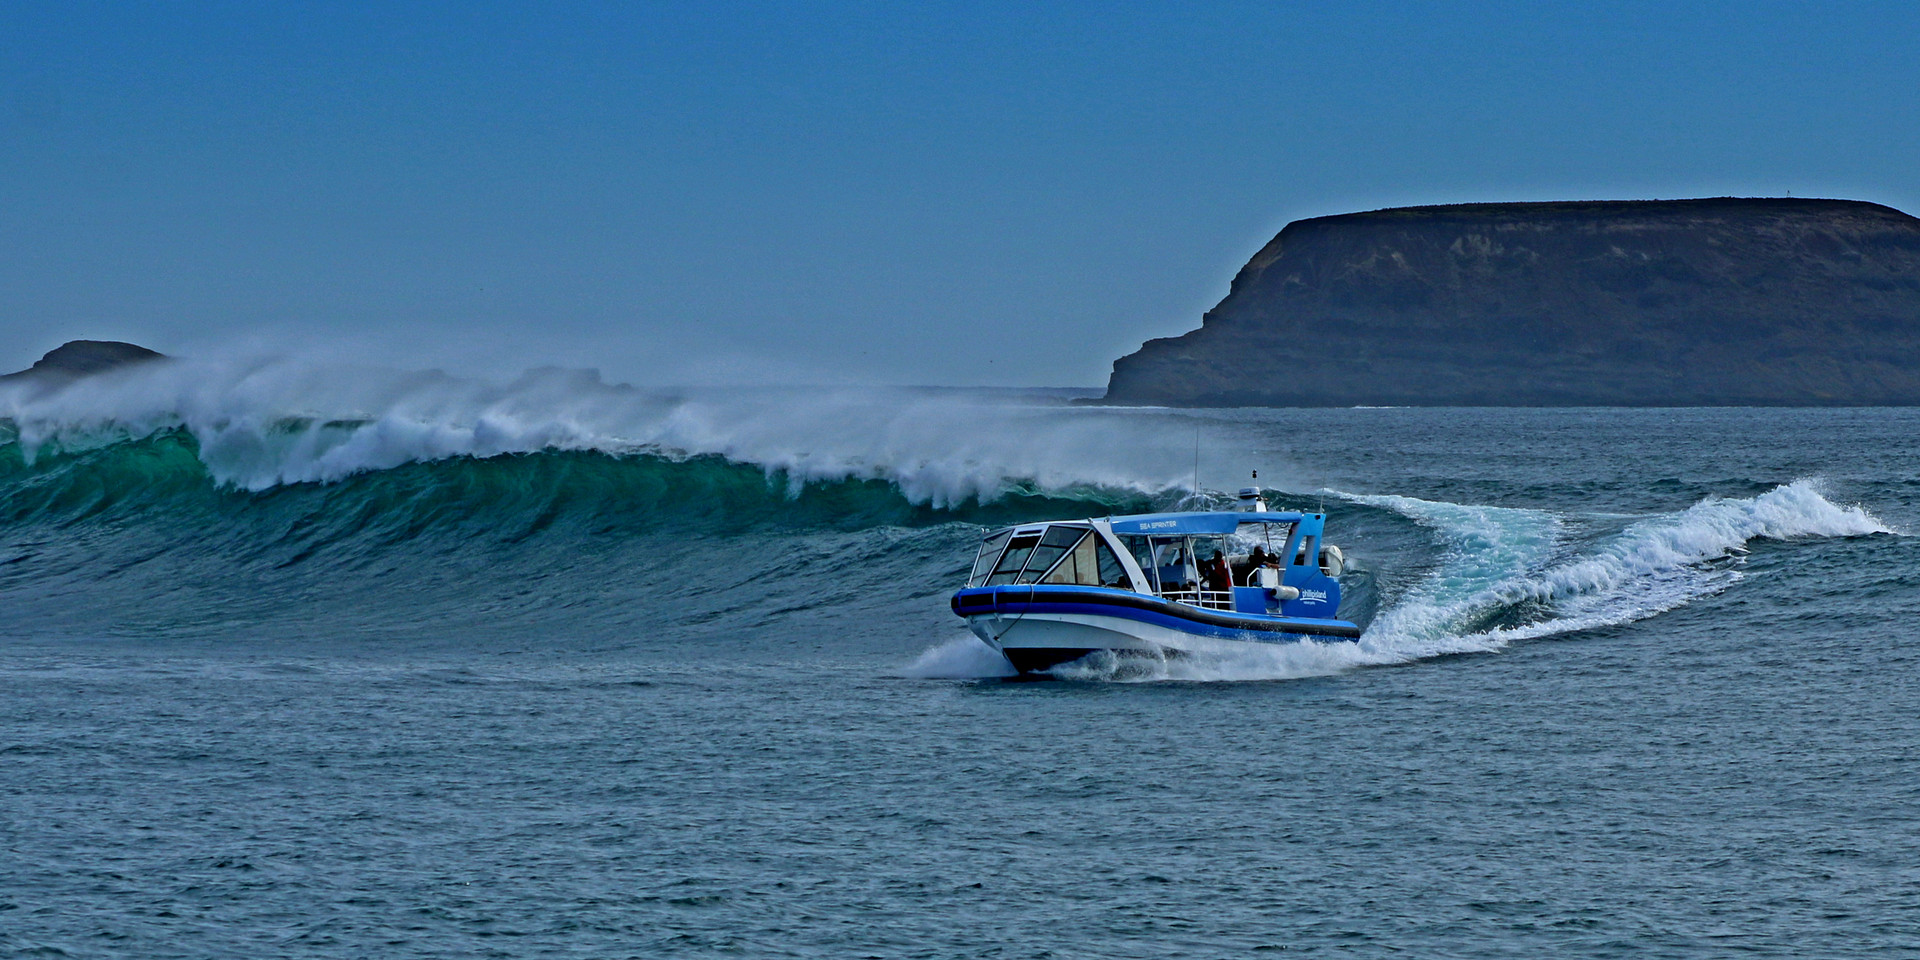 EcoBoat on a Wave